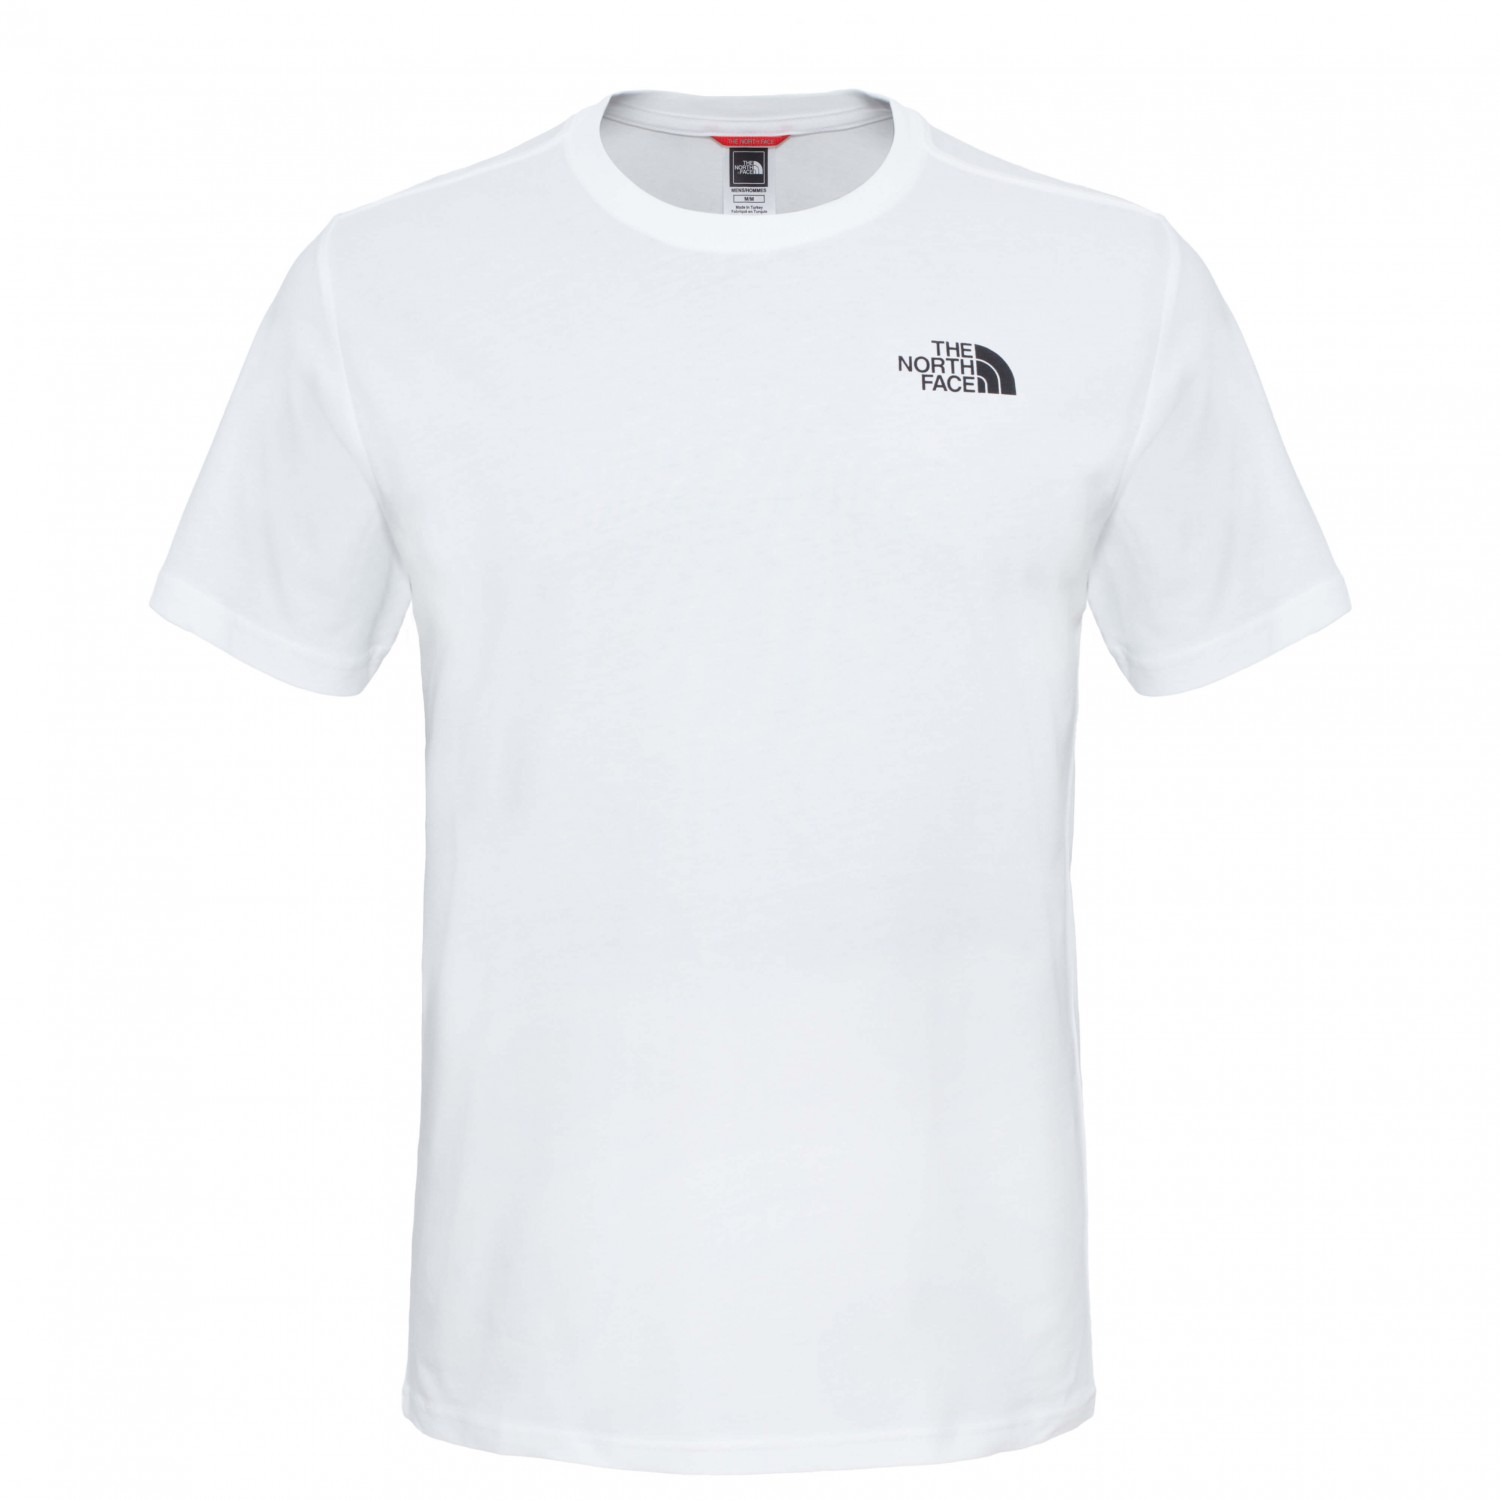 100% authentique 7bb74 57cc6 The North Face S/S Simple Dome Tee - T-shirt Homme | Achat ...